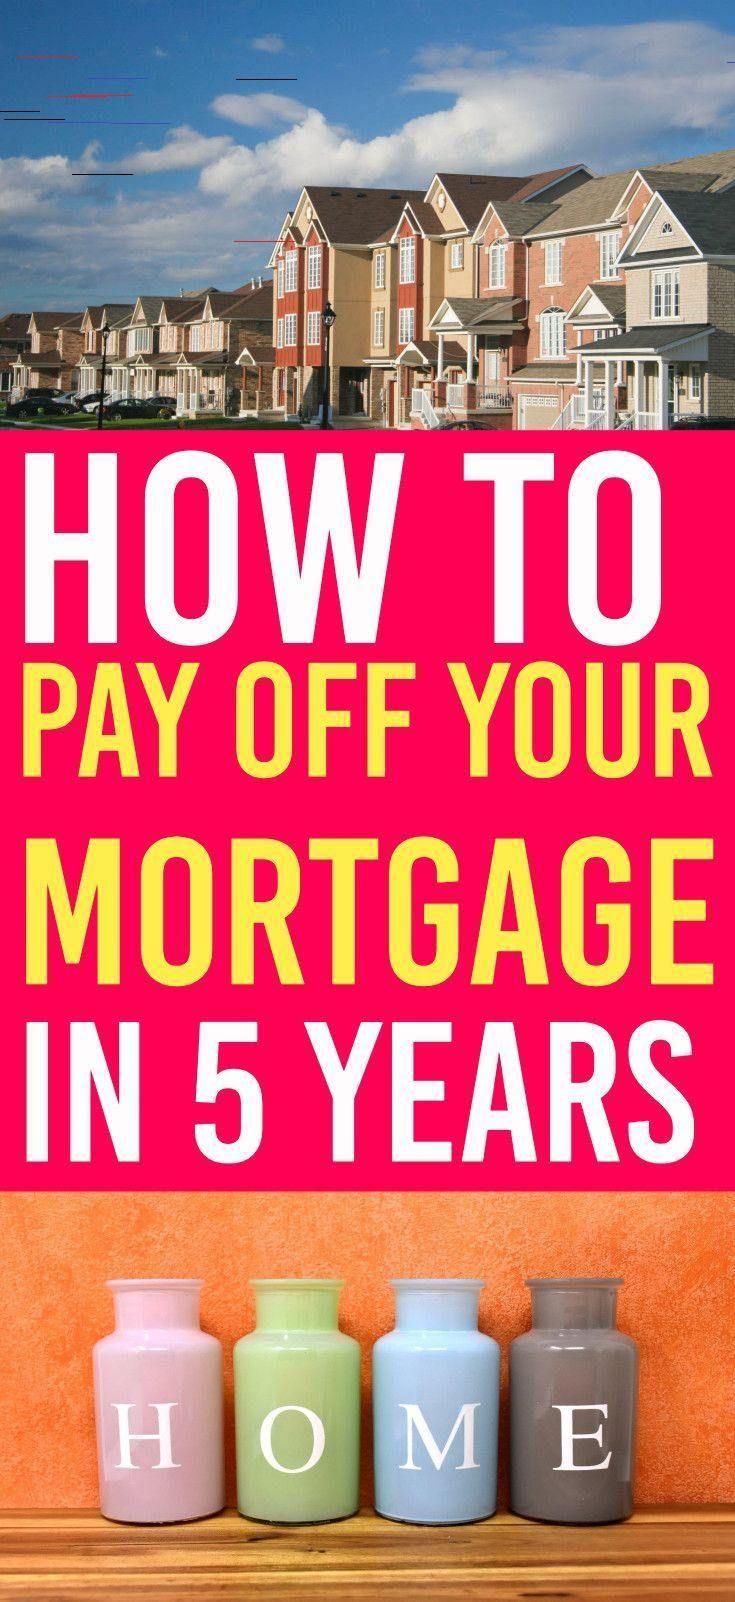 How To Pay Off Your Mortgage Faster And Become Mortgage Free In 2020 Paying Off Mortgage Faster Pay Off Mortgage Early Mortgage Free